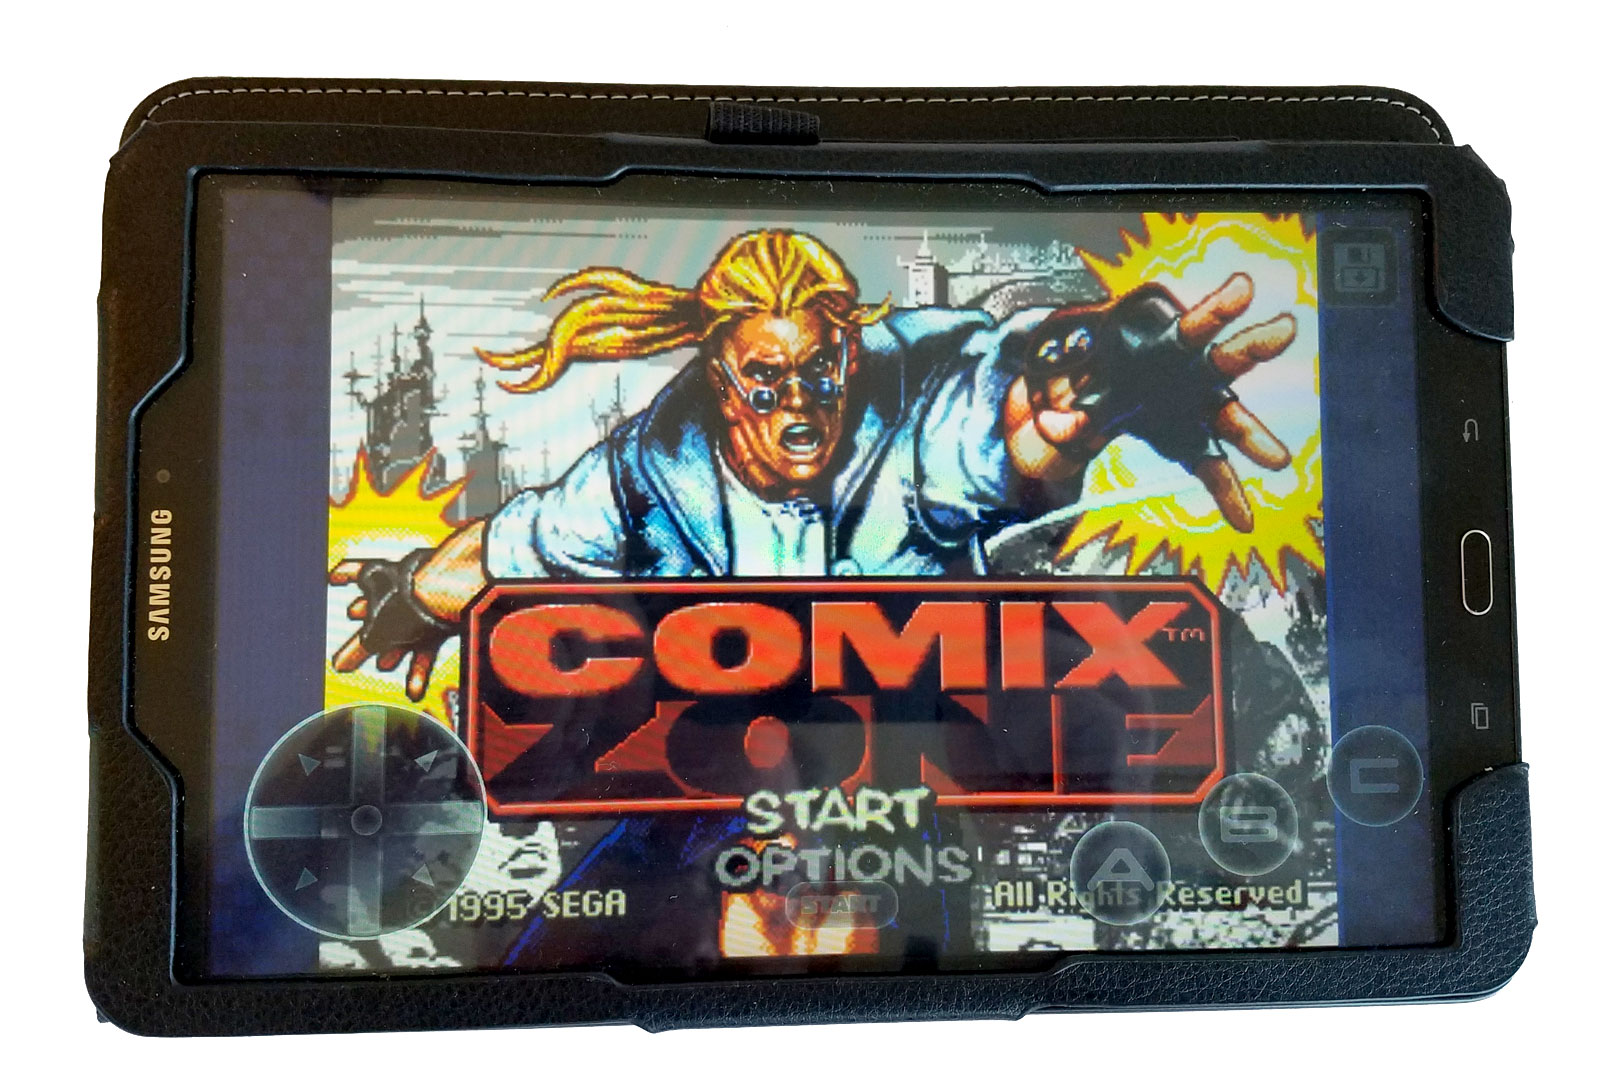 SEGA Forever - Comix Zone for Androoid